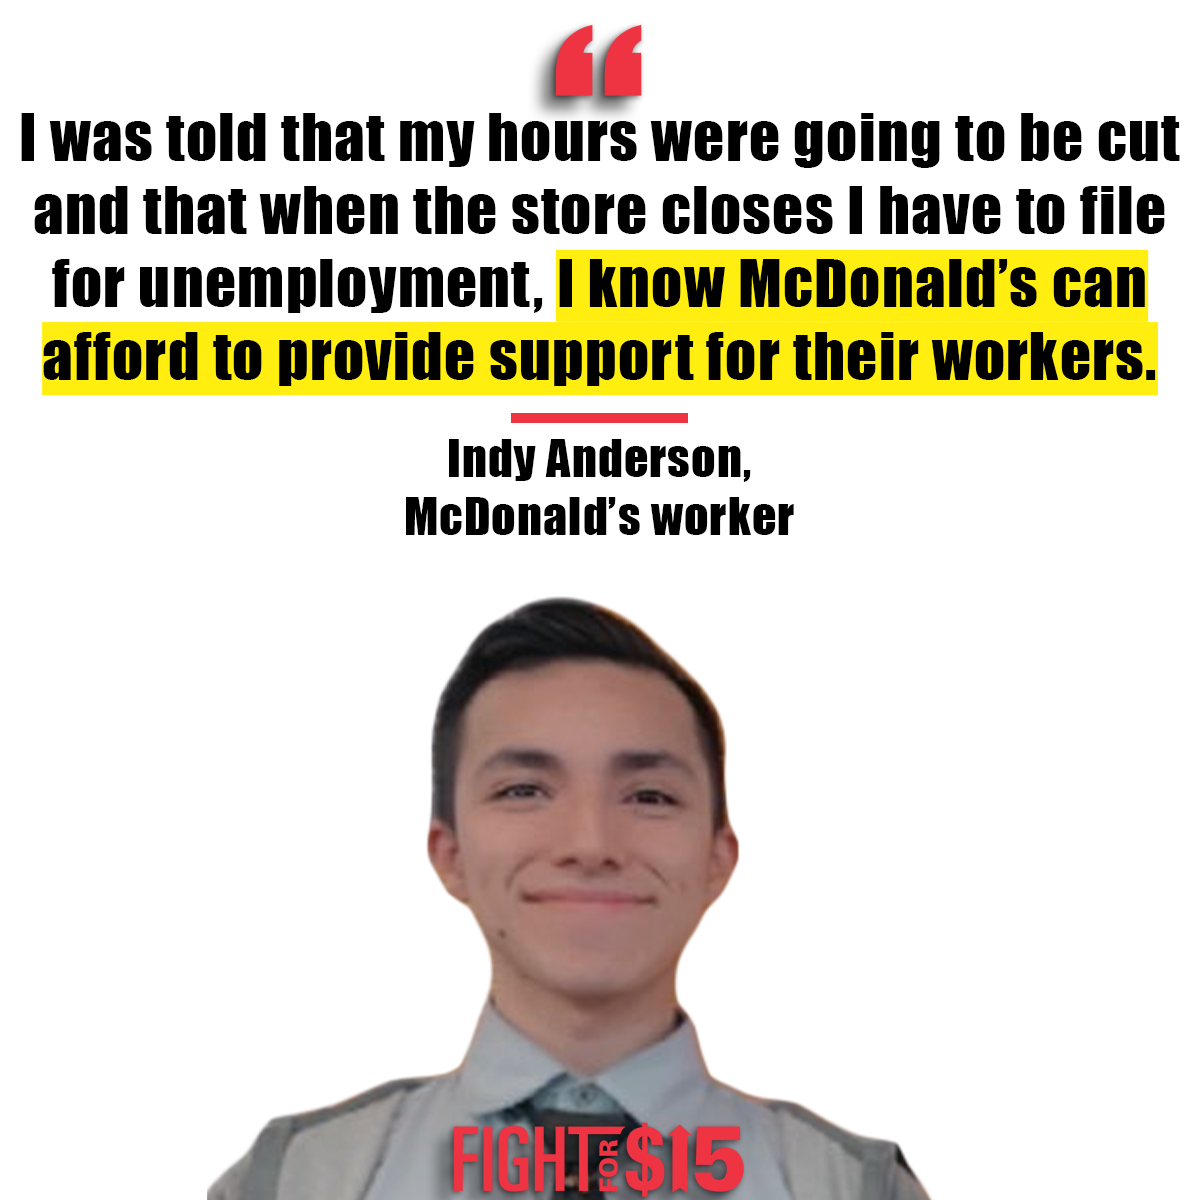 I was told my hours would be cut and that when the store closes I have to file for unemployment. I know McDonald's can afford to provide support for its workers.